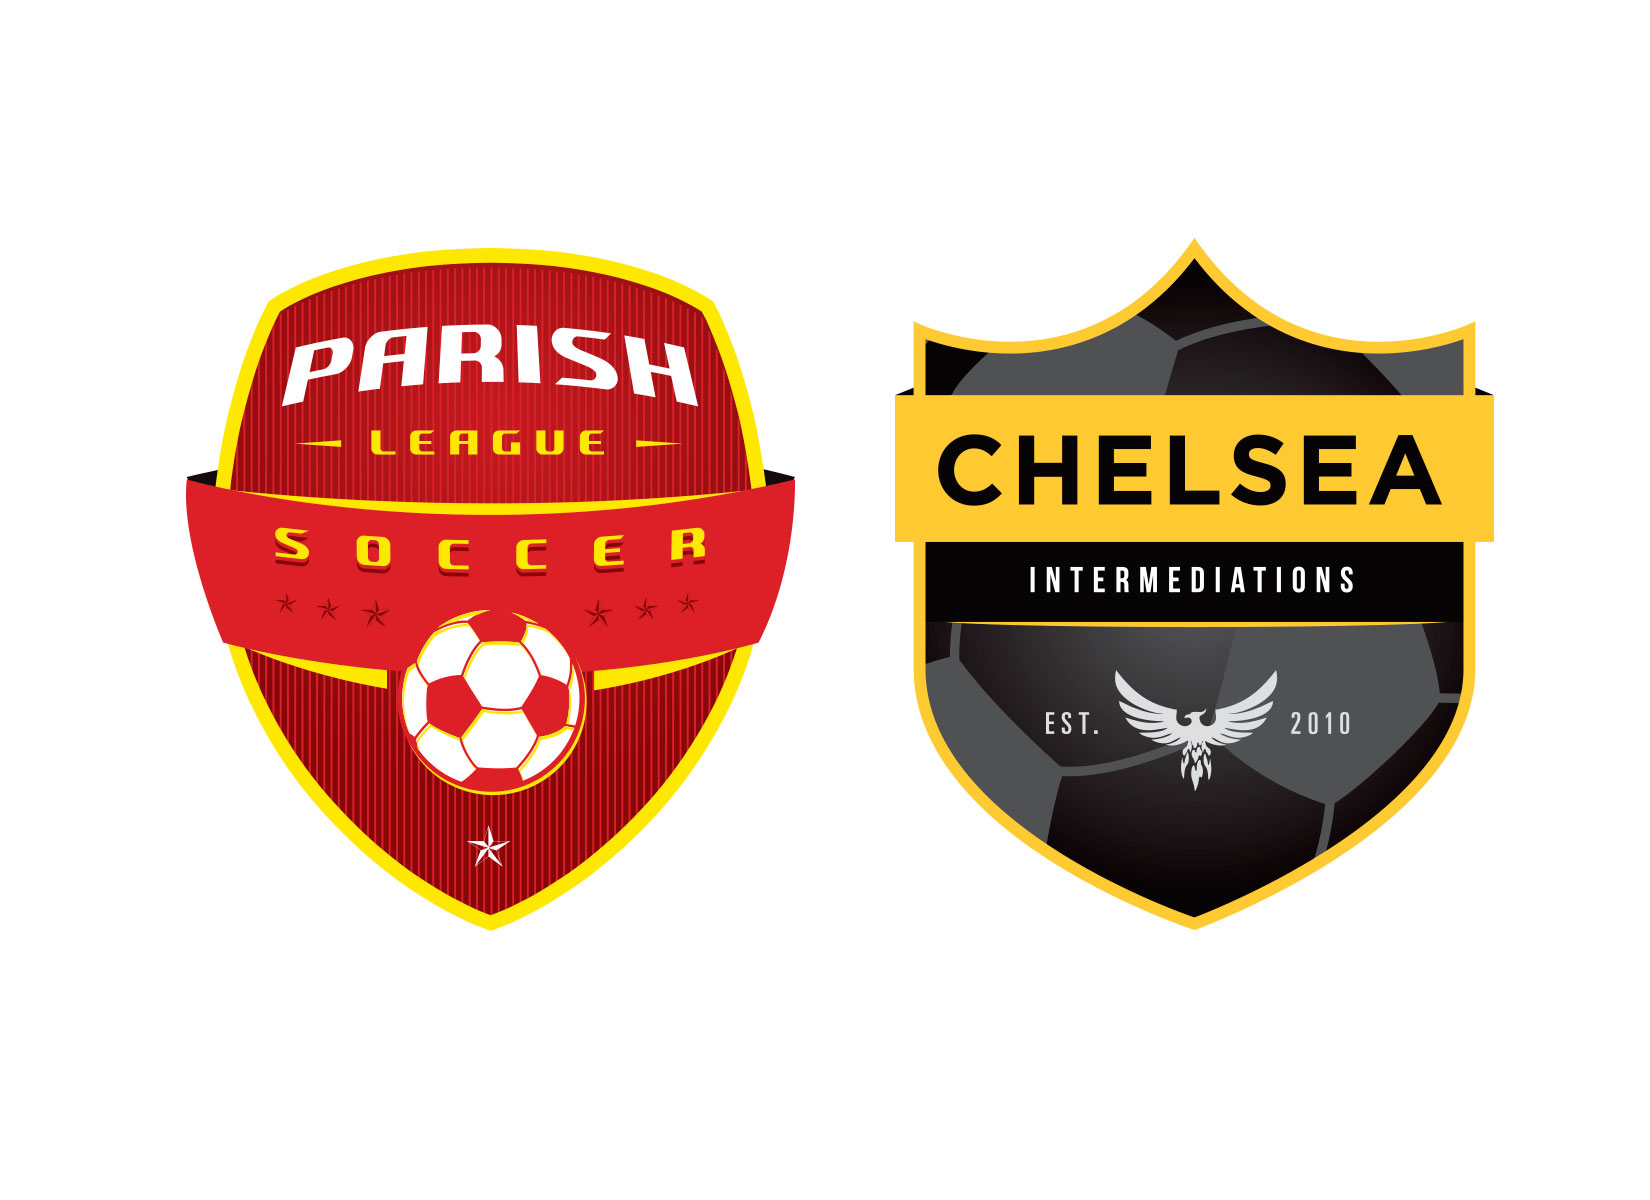 various-custom-soccer-crest-designs-by-jordan-fretz-2.jpg